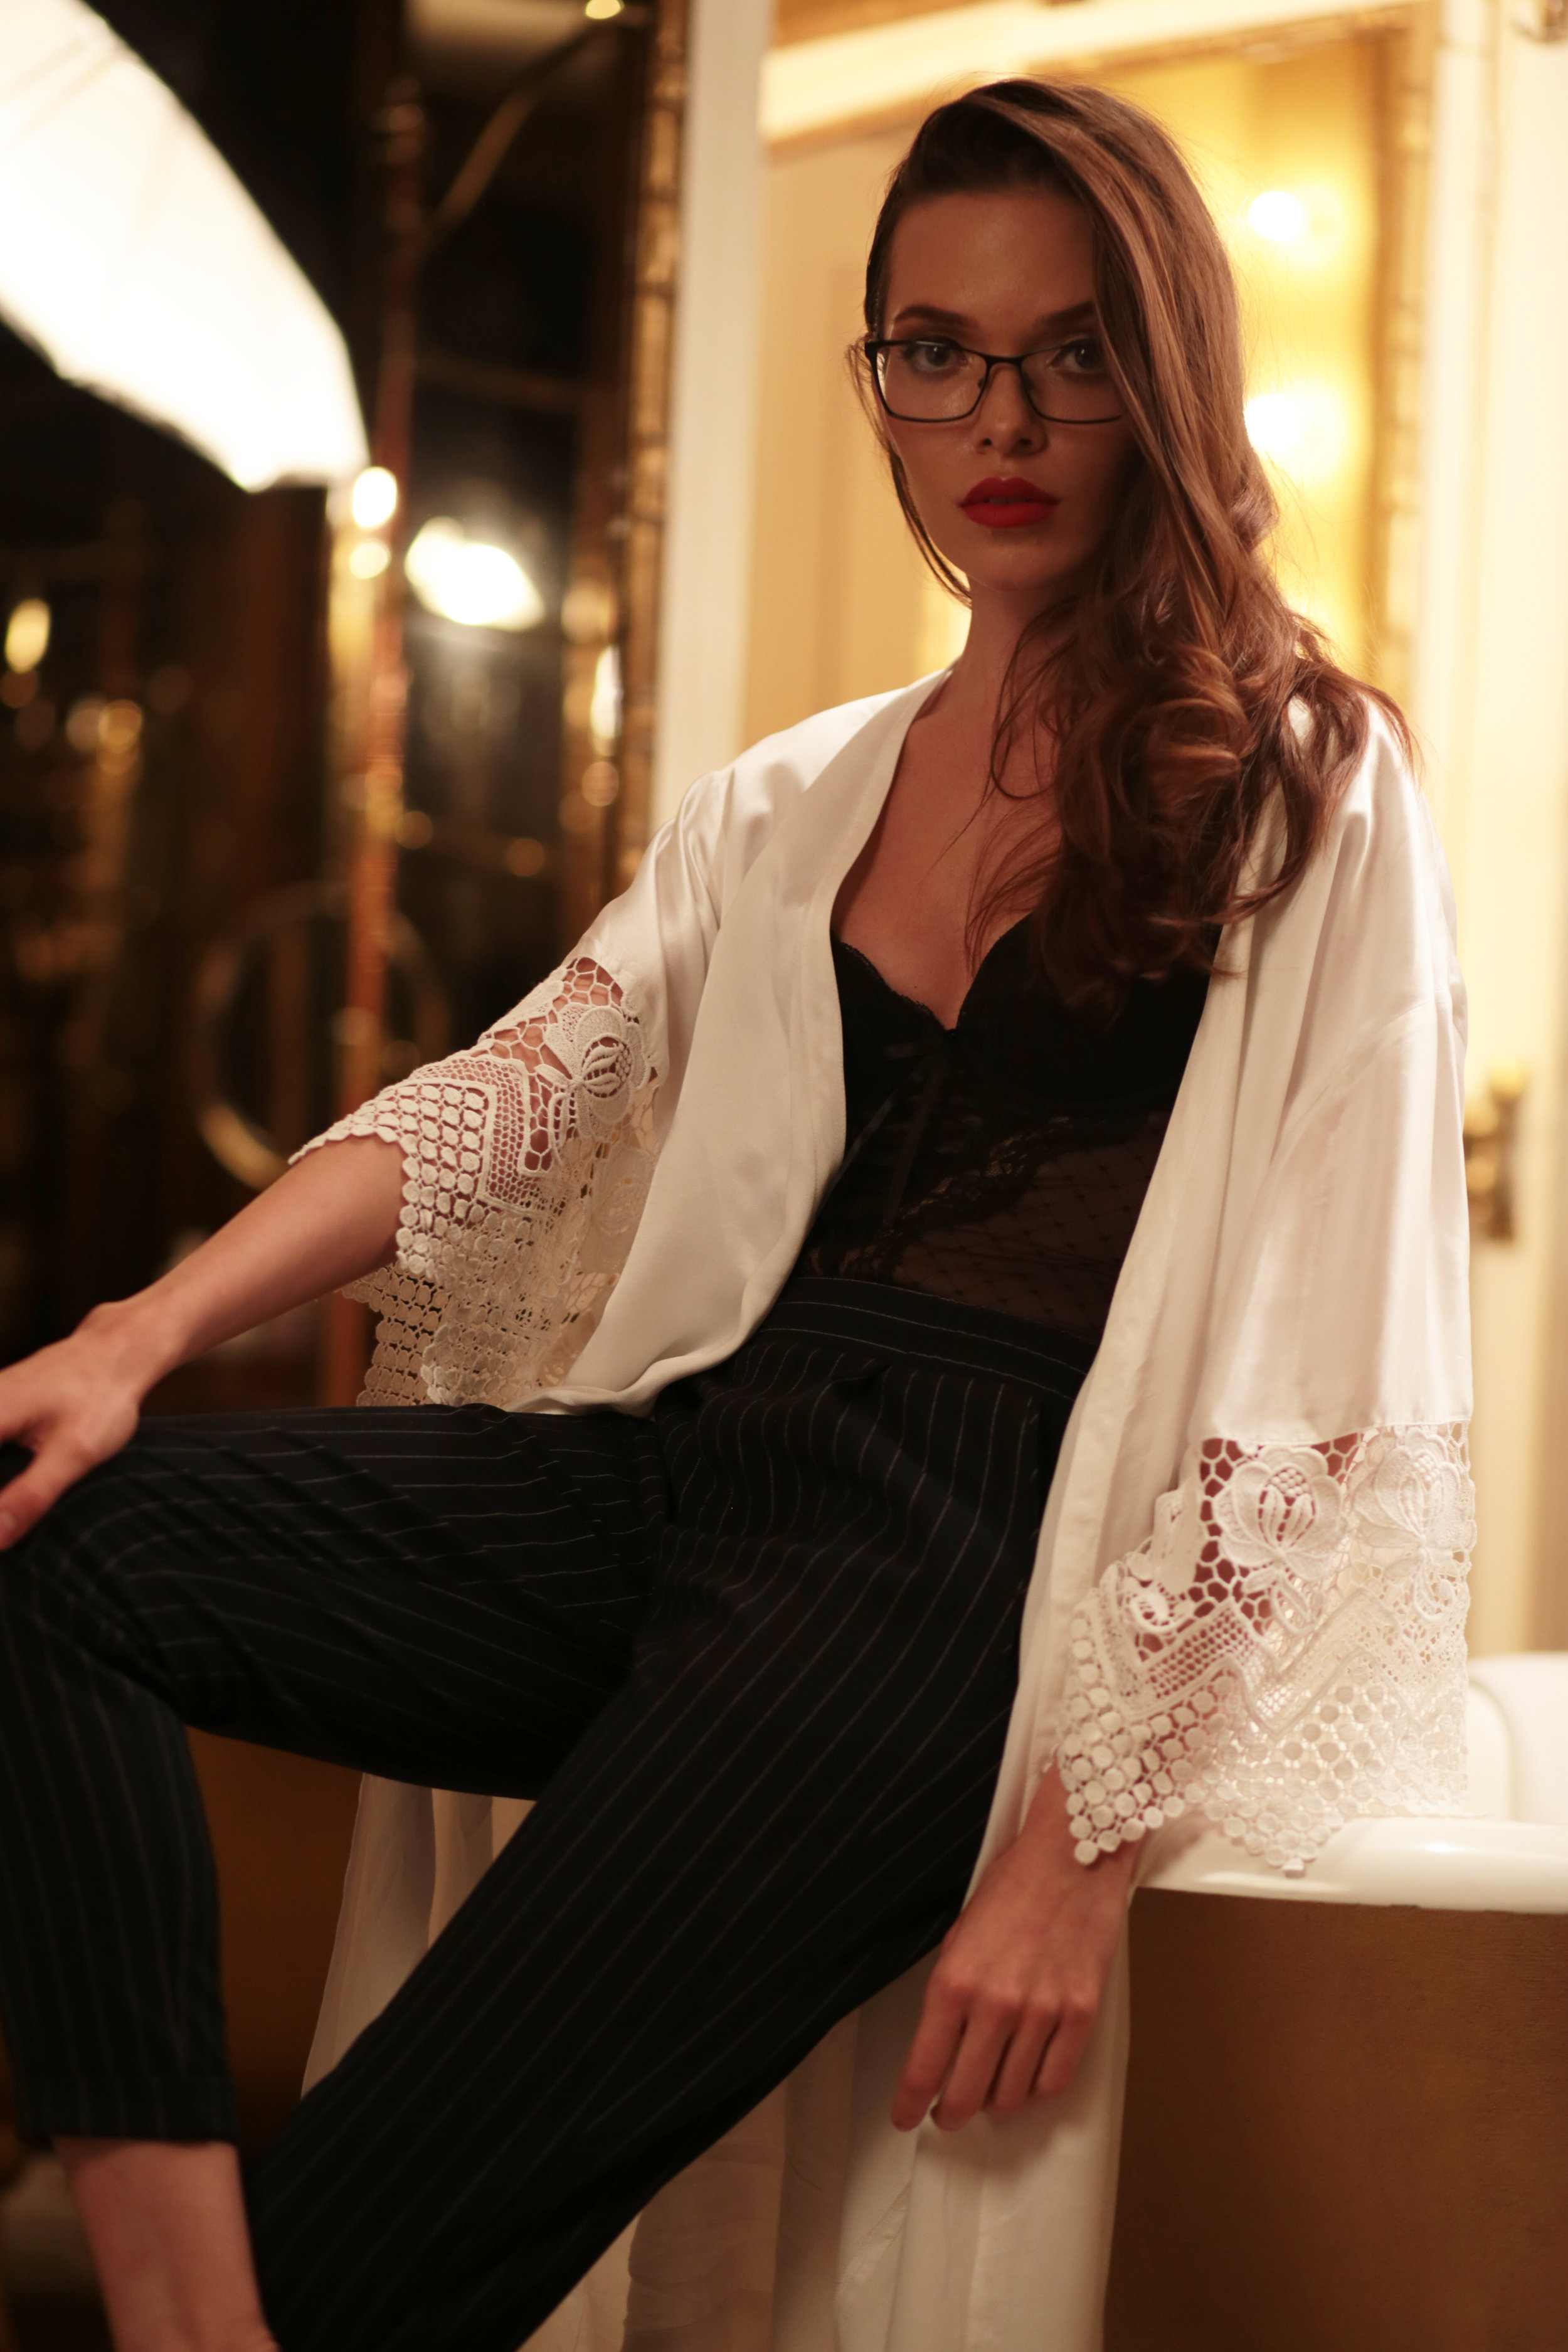 THE MOST LUXURIOUS ROBE YOU'LL EVER FIND